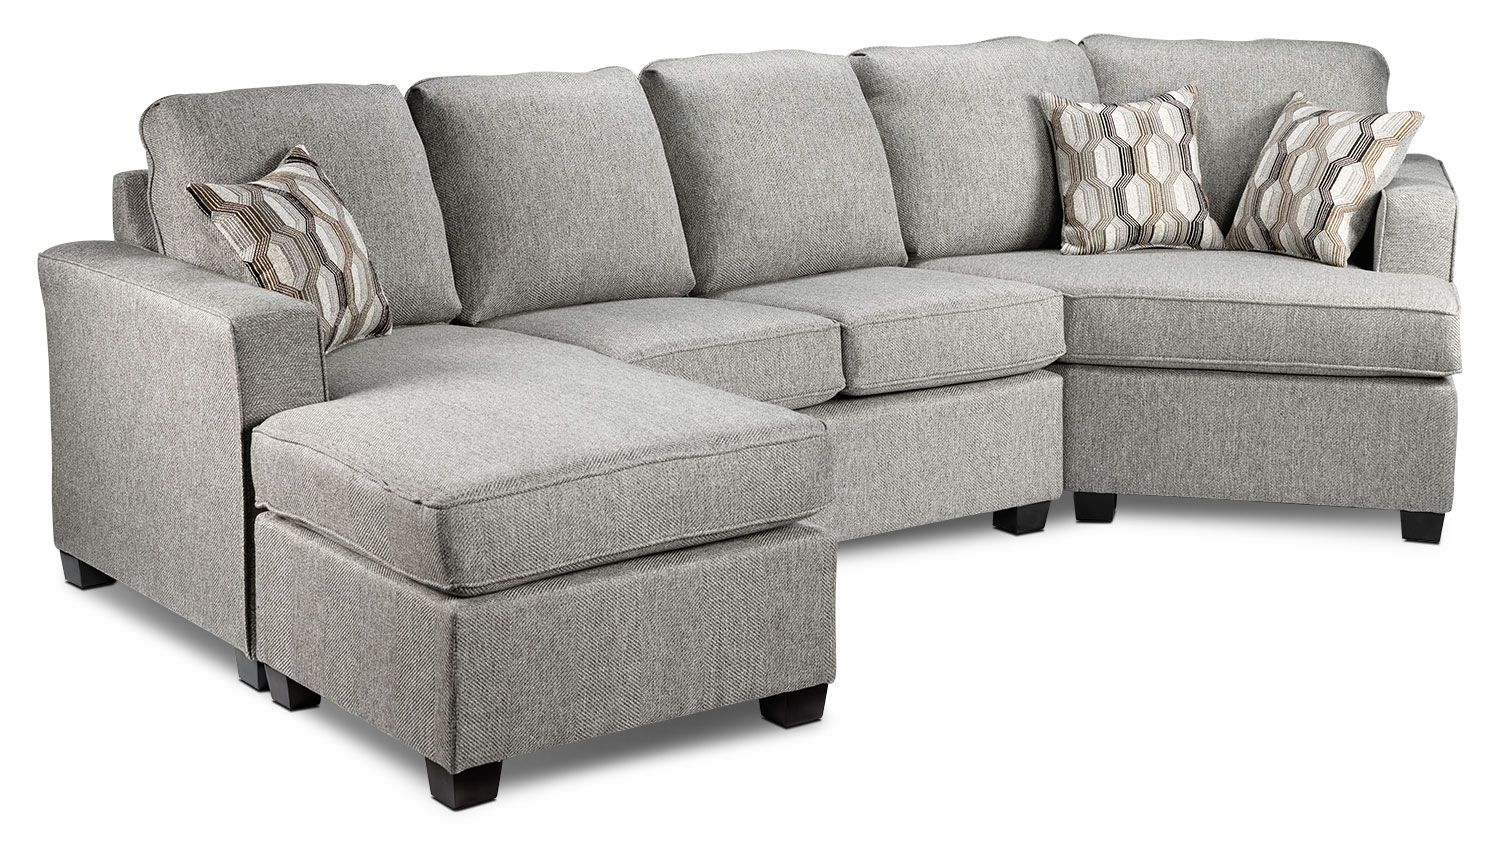 Prime Downtown 2 Piece Left Facing Sectional Grey Leons Andrewgaddart Wooden Chair Designs For Living Room Andrewgaddartcom